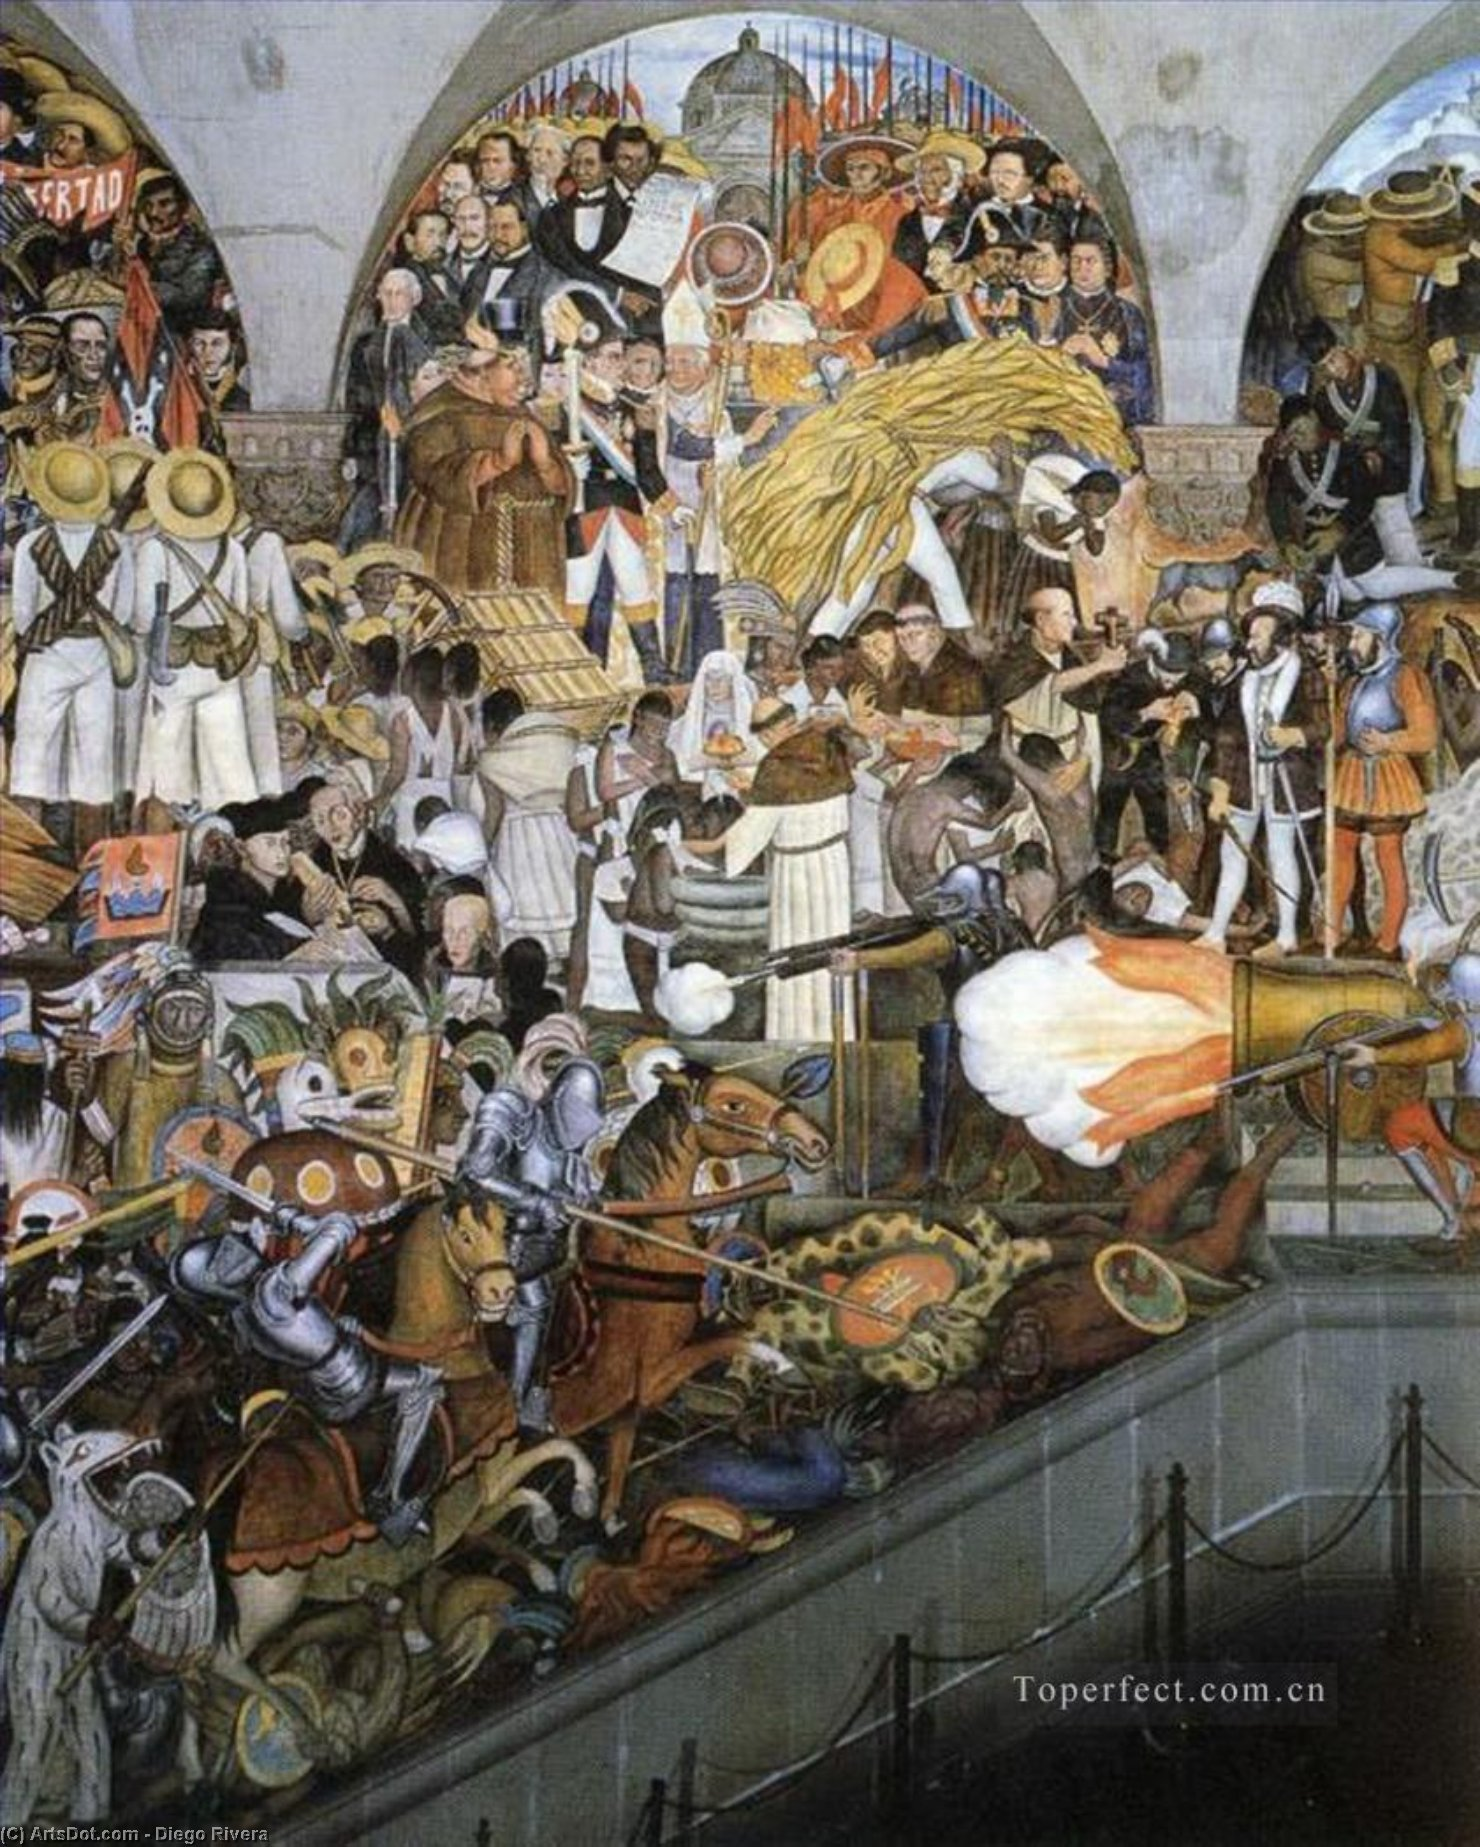 The History of Mexico, Frescoes by Diego Rivera (1886-1957, Mexico)